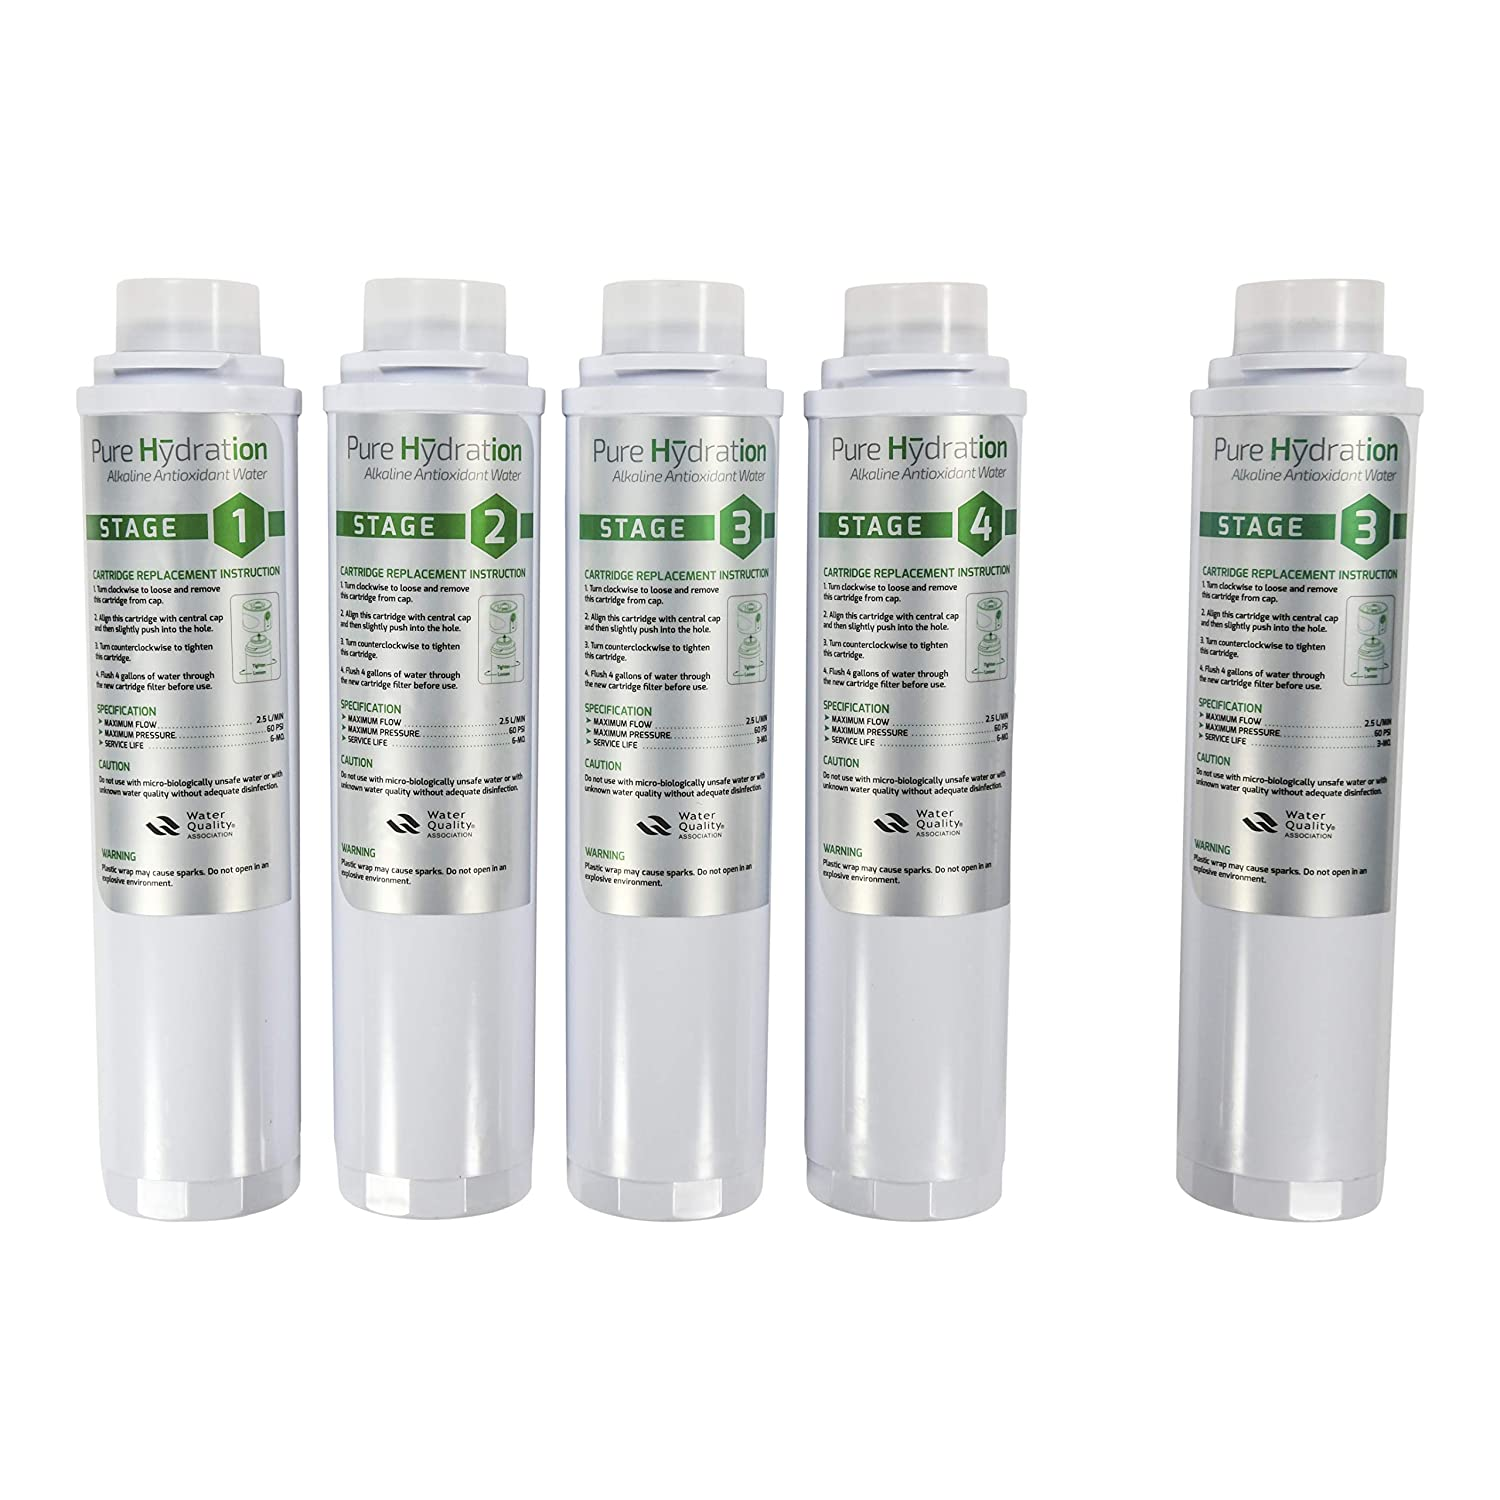 Cosan/USA Pure Hydration Next Generation Water Ionizer Replacement Cartridges